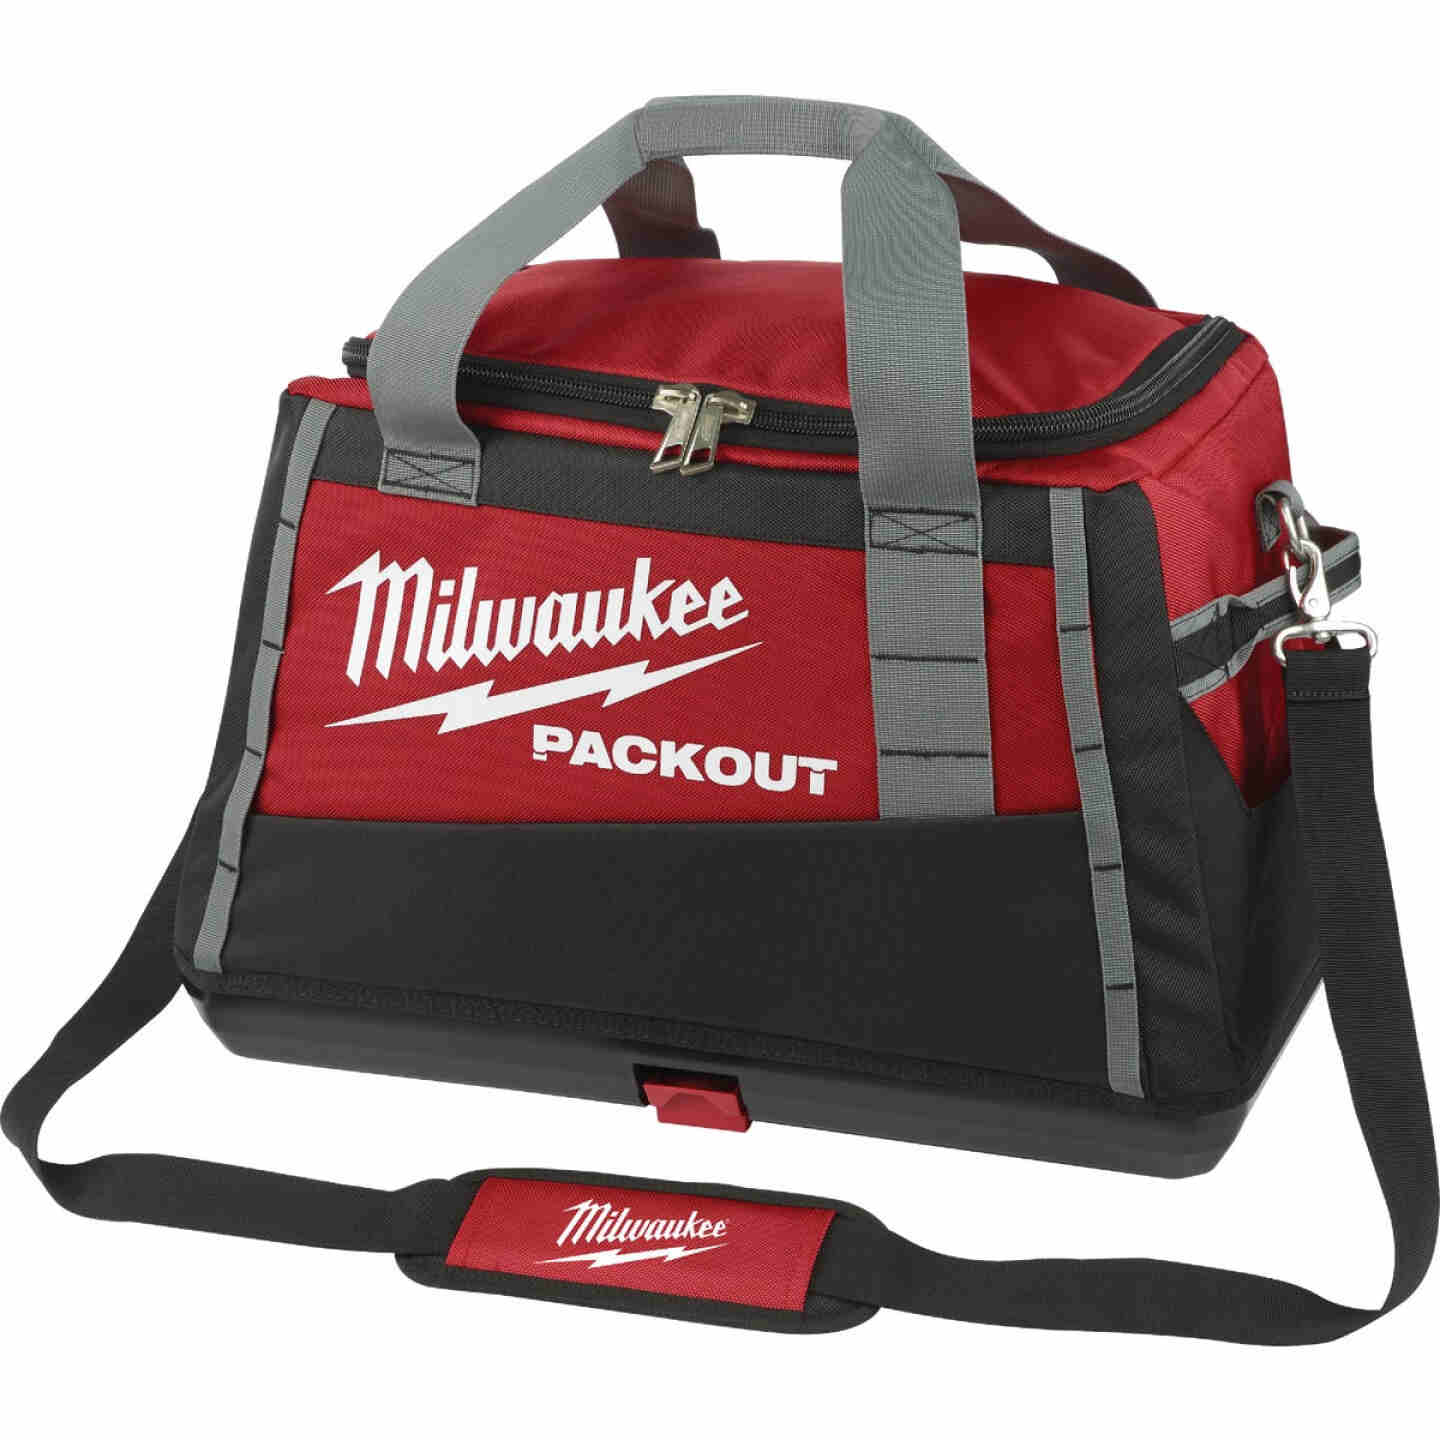 Milwaukee PACKOUT 8-Pocket 20 In. Tool Bag Image 1